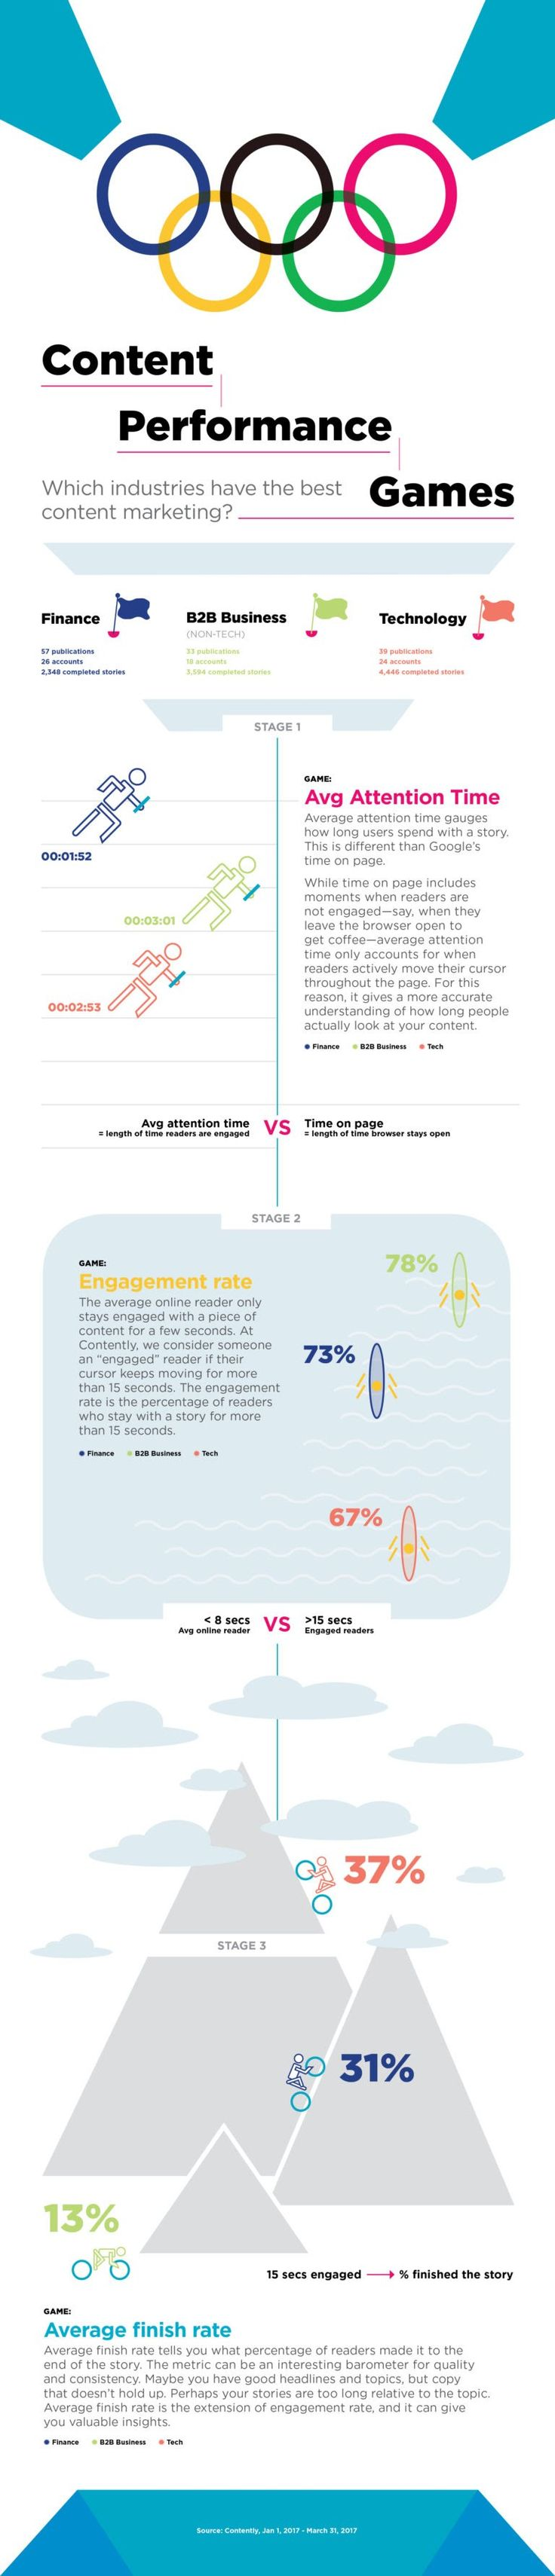 Which Industries Have the Best Content Marketing? #infographic #ContentMarketing #Marketing